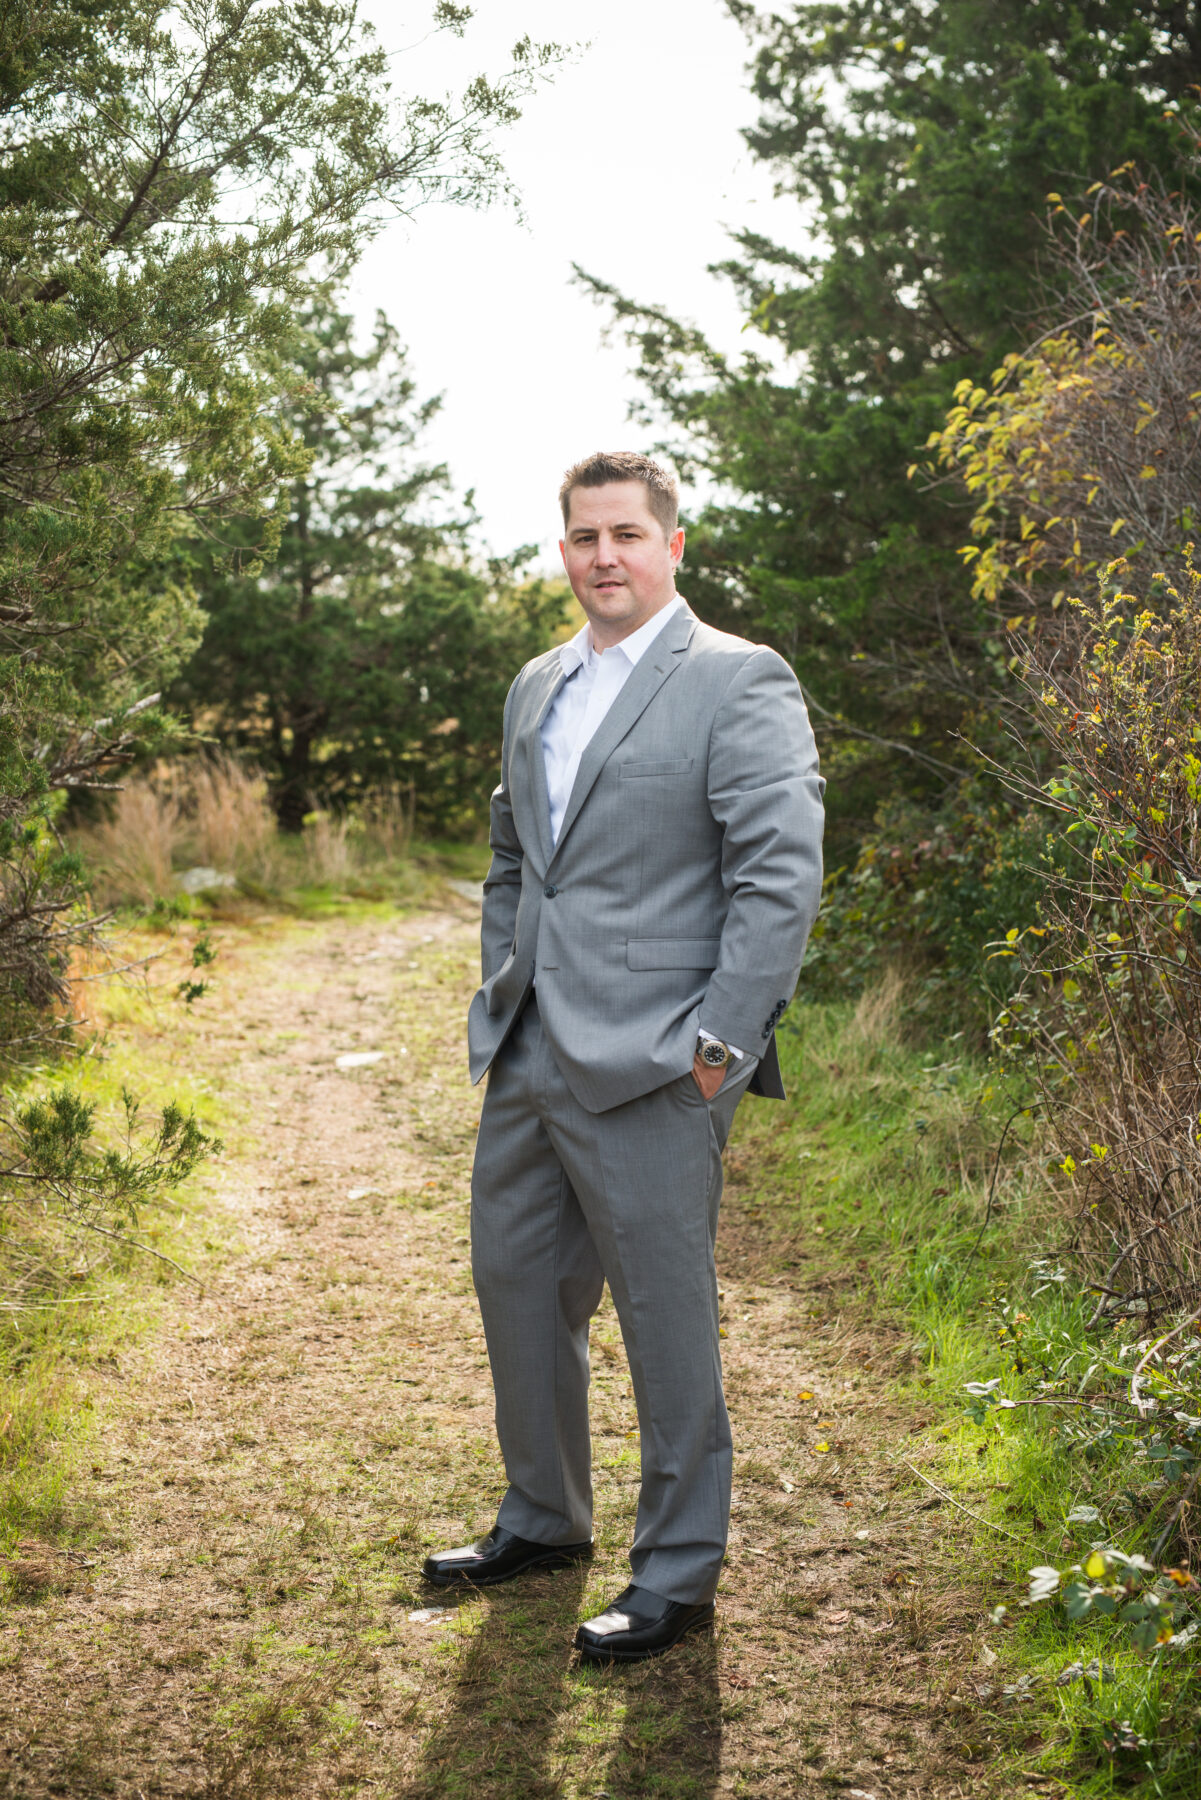 Castle Hill Newport Elopement Danielle and Mike Blueflash Photography 9